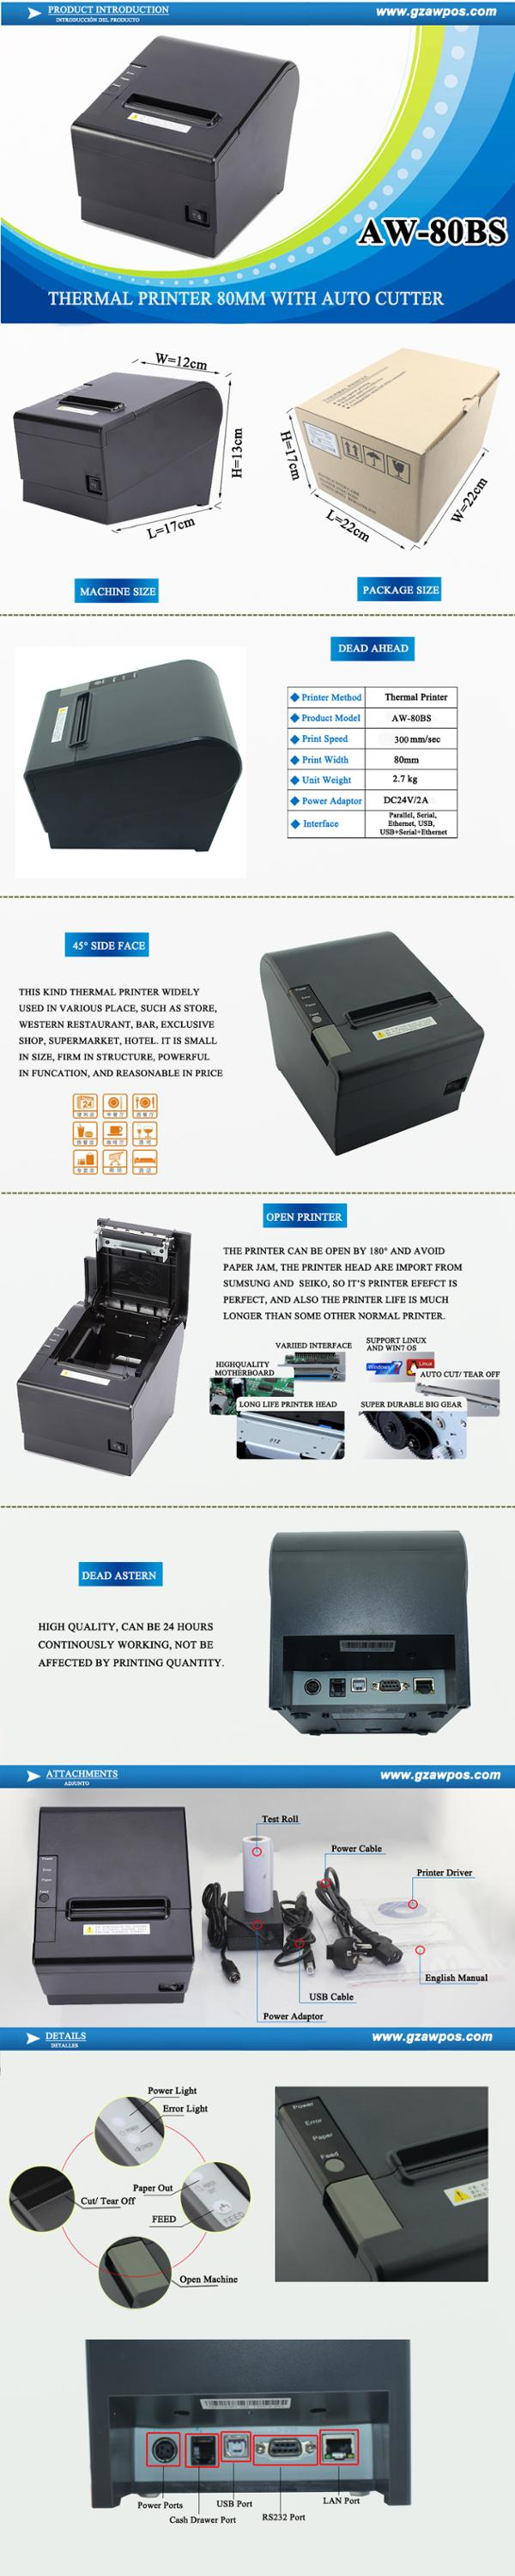 Fast print speed 300mm/sec restaurant USB/LAN/COM 80MM thermal receipt printer auto cutter pos printer